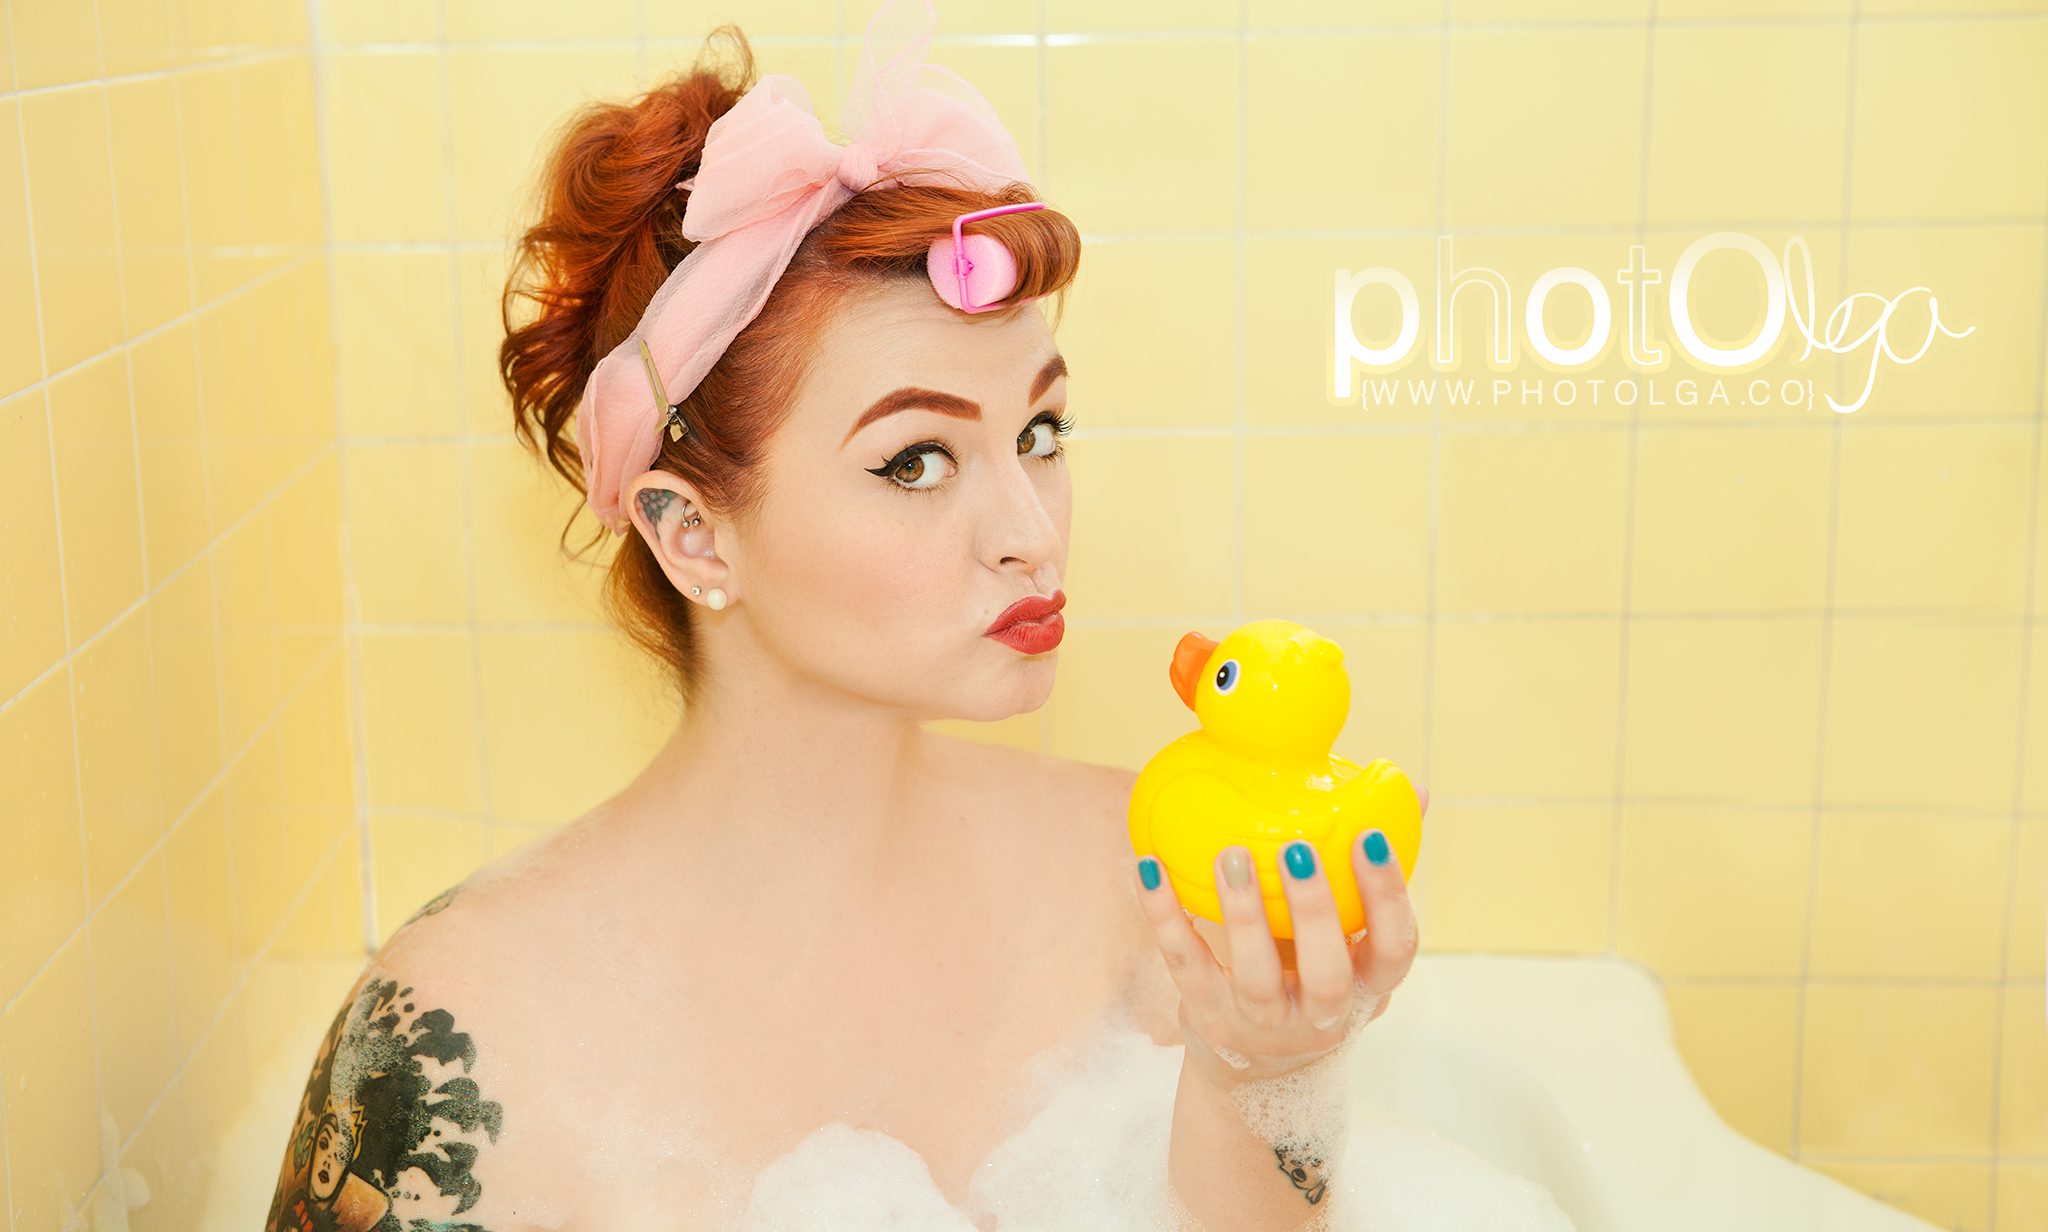 red haired mary ann jones enjoying a bubble bath in a retro pinup style